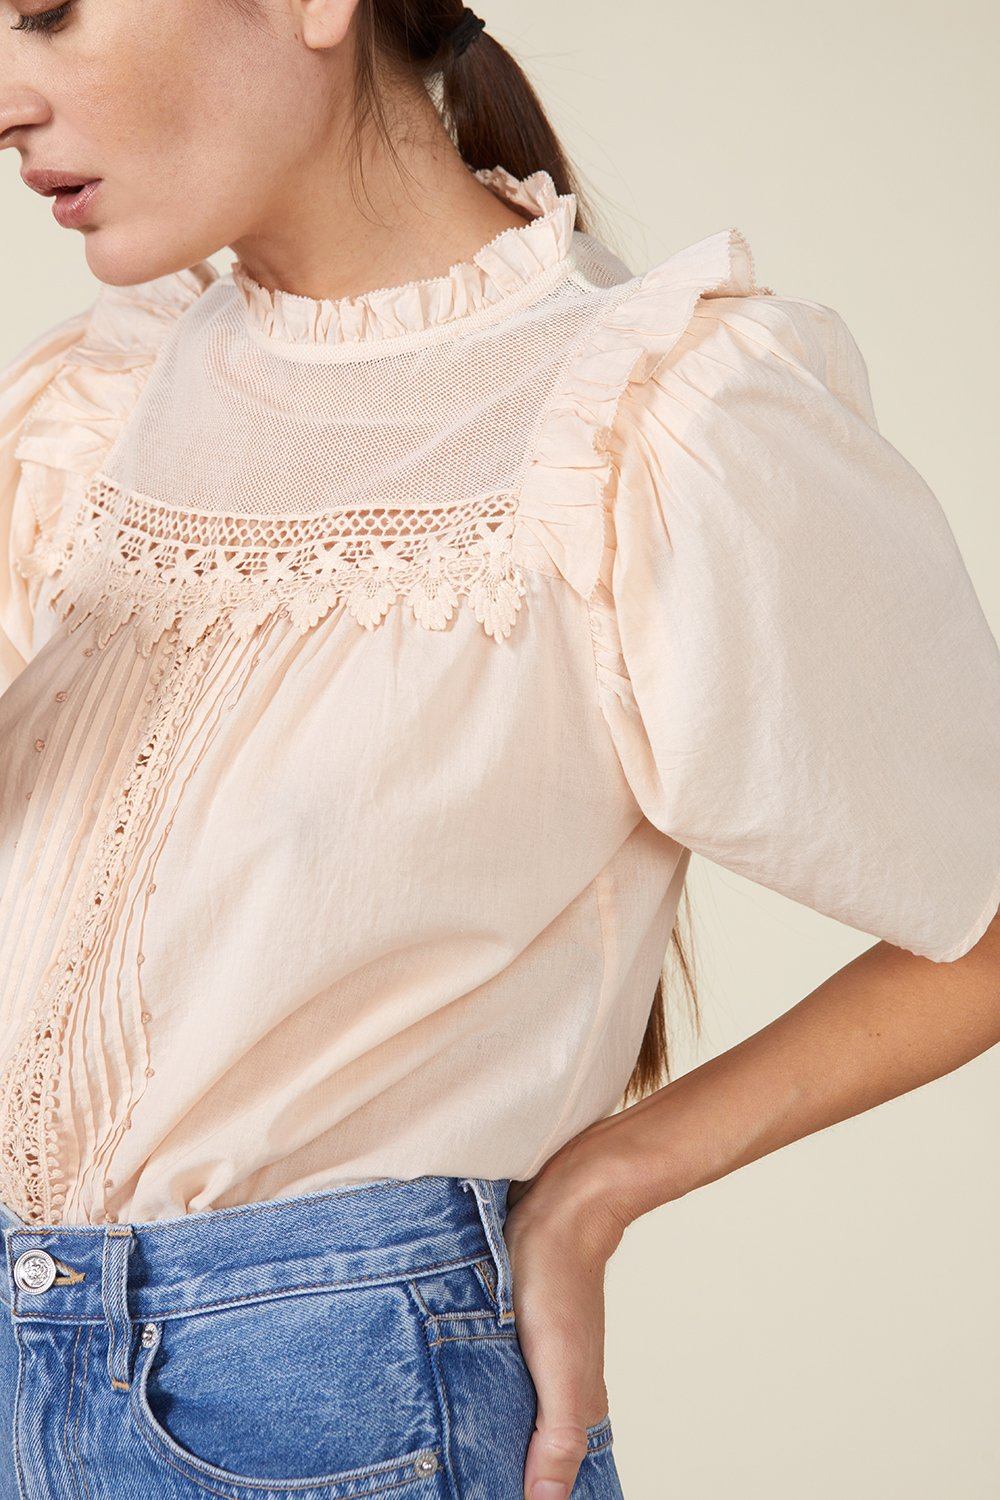 MAISIE TOP, ROSEWATER by St. Roche - 5